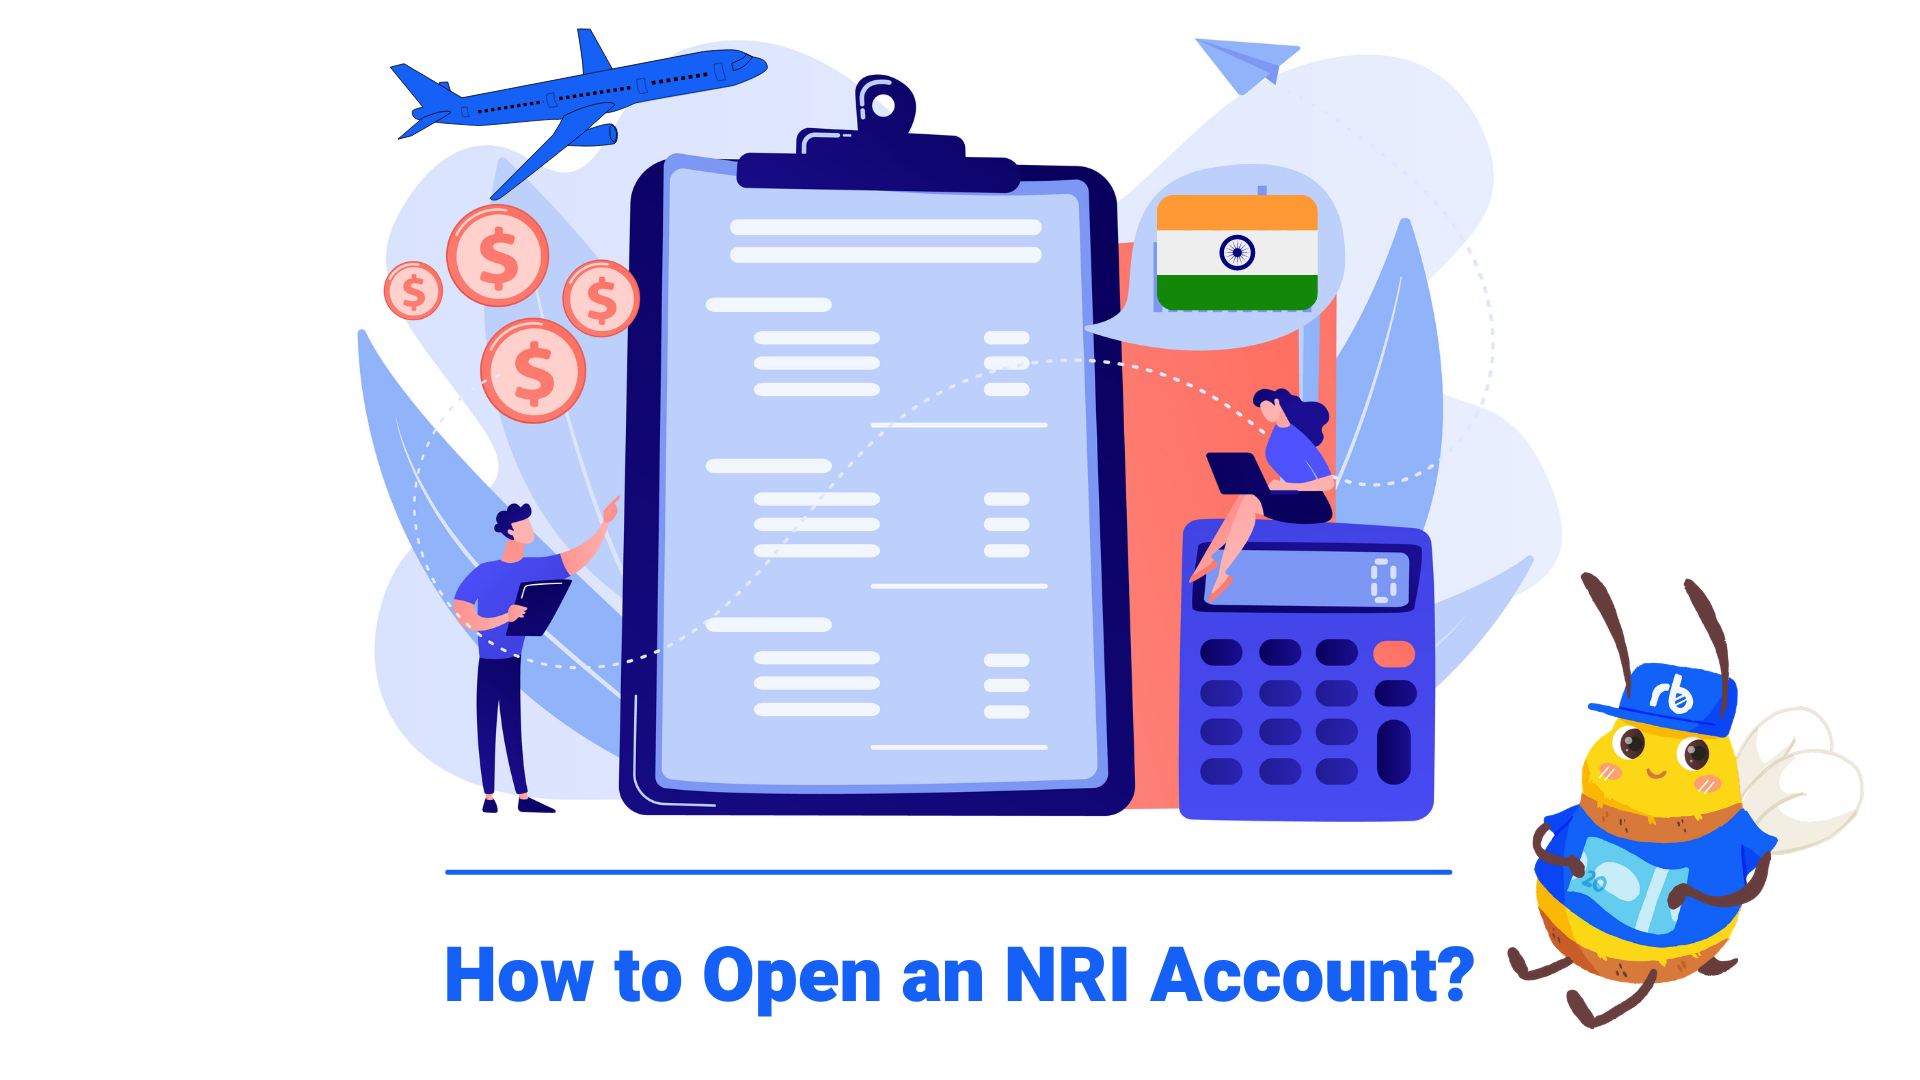 How to open an NRI account?